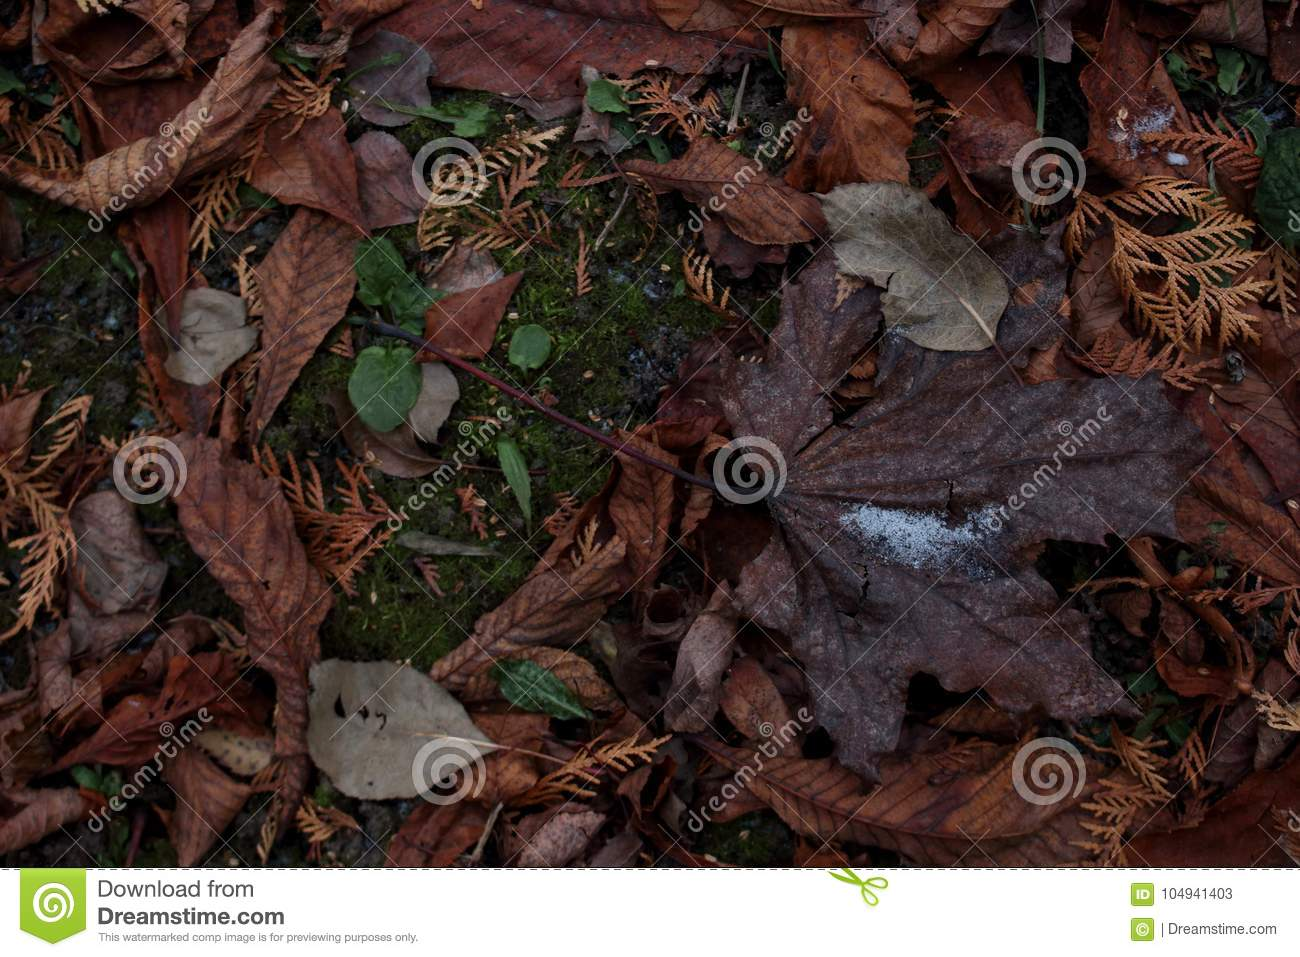 Background With A Brown Maple Leaf Lying On A Carpet Of